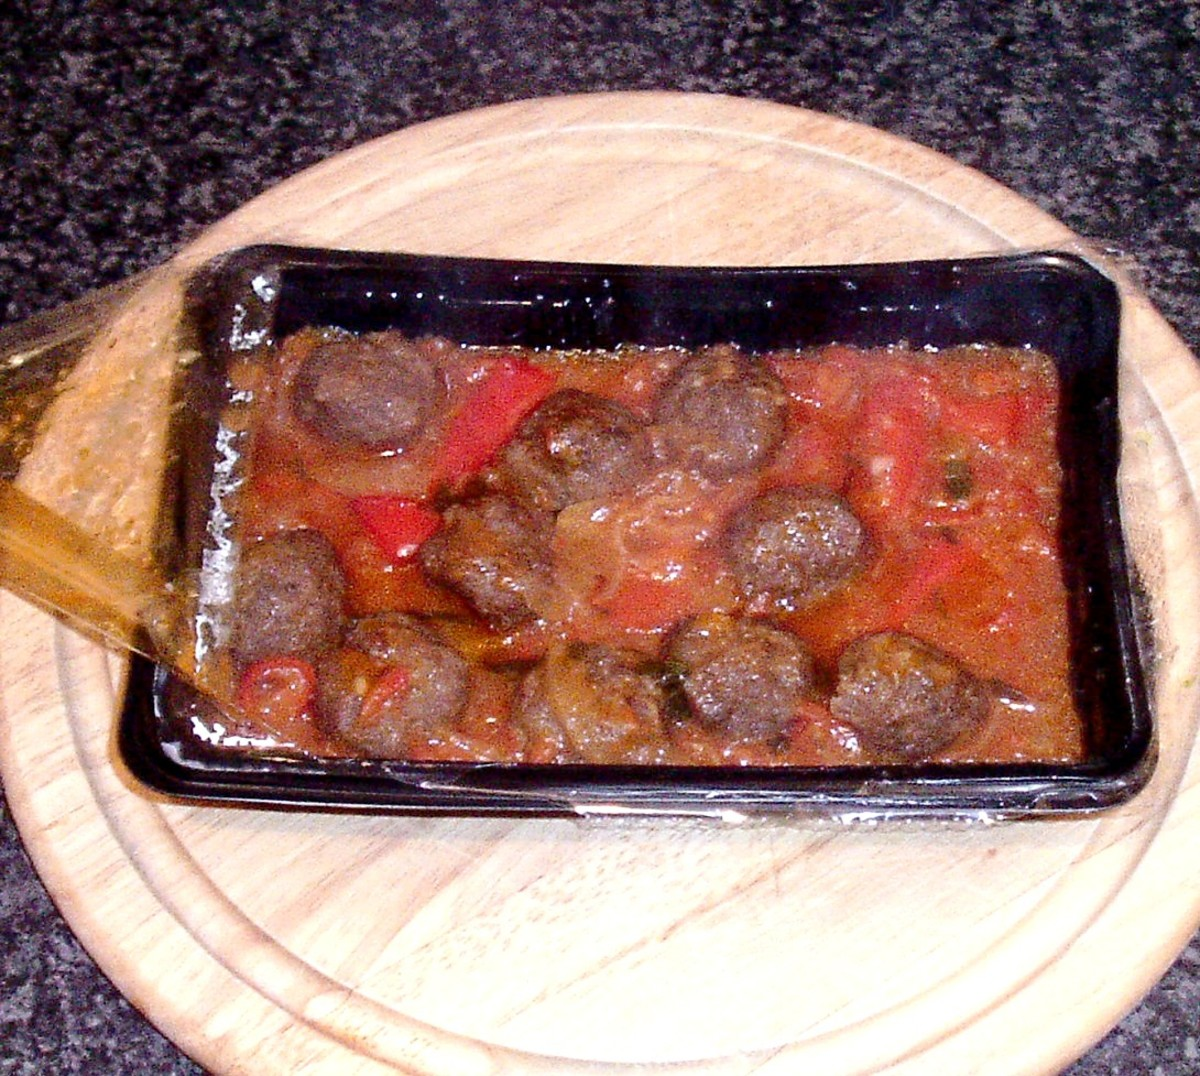 Wagyu beef meatballs in tomato salsa are removed from microwave